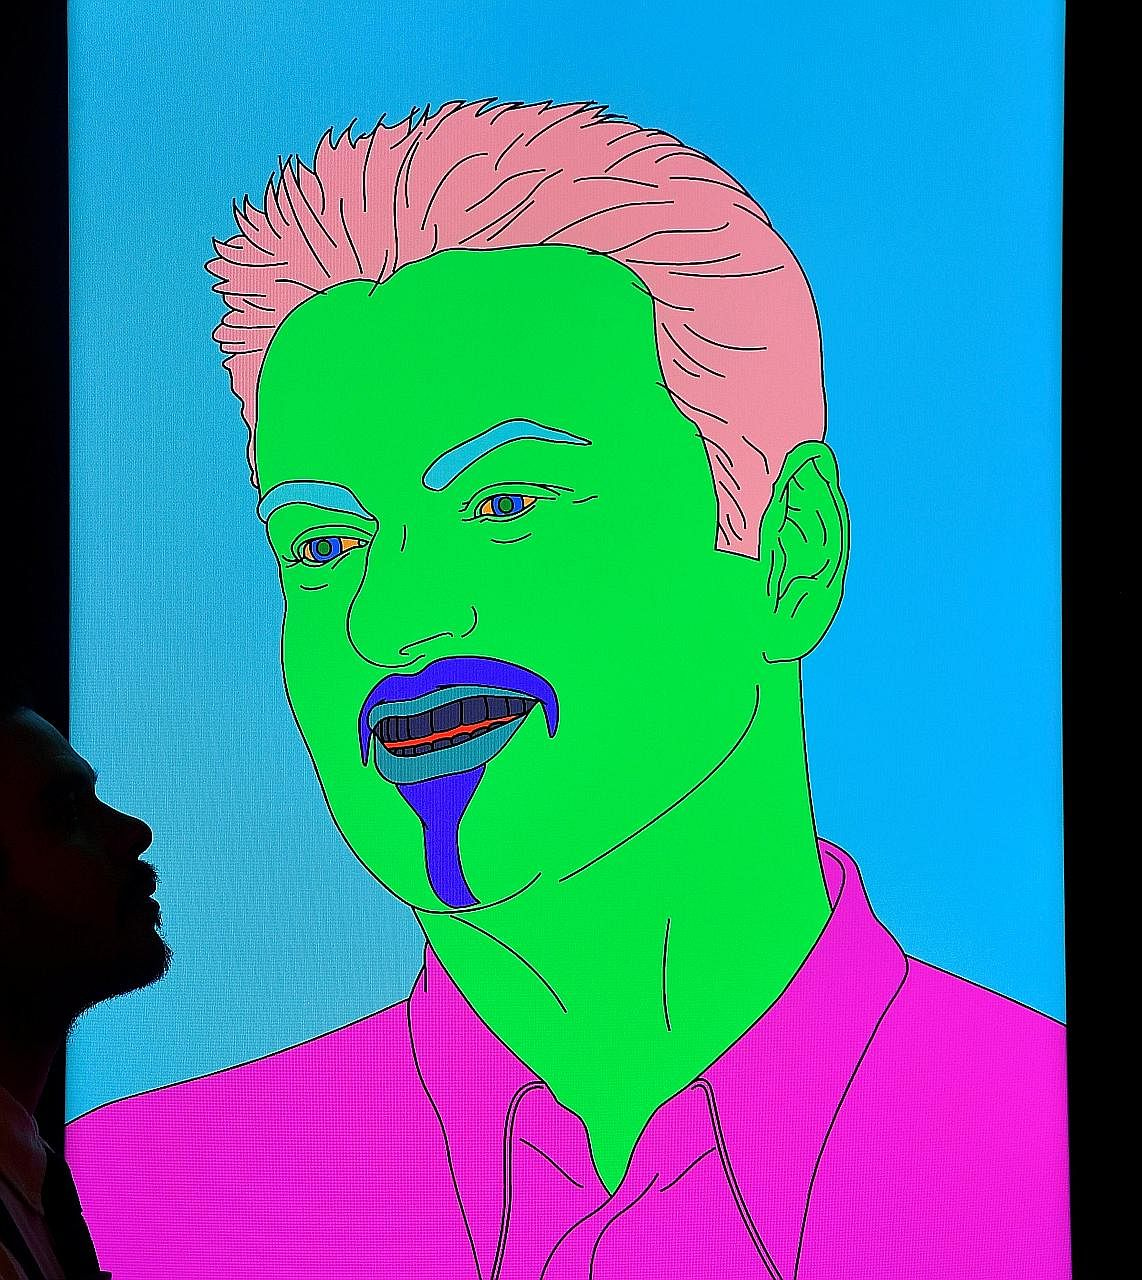 A portrait titled (George) by Michael Craig-Martin from George Michael's collection.